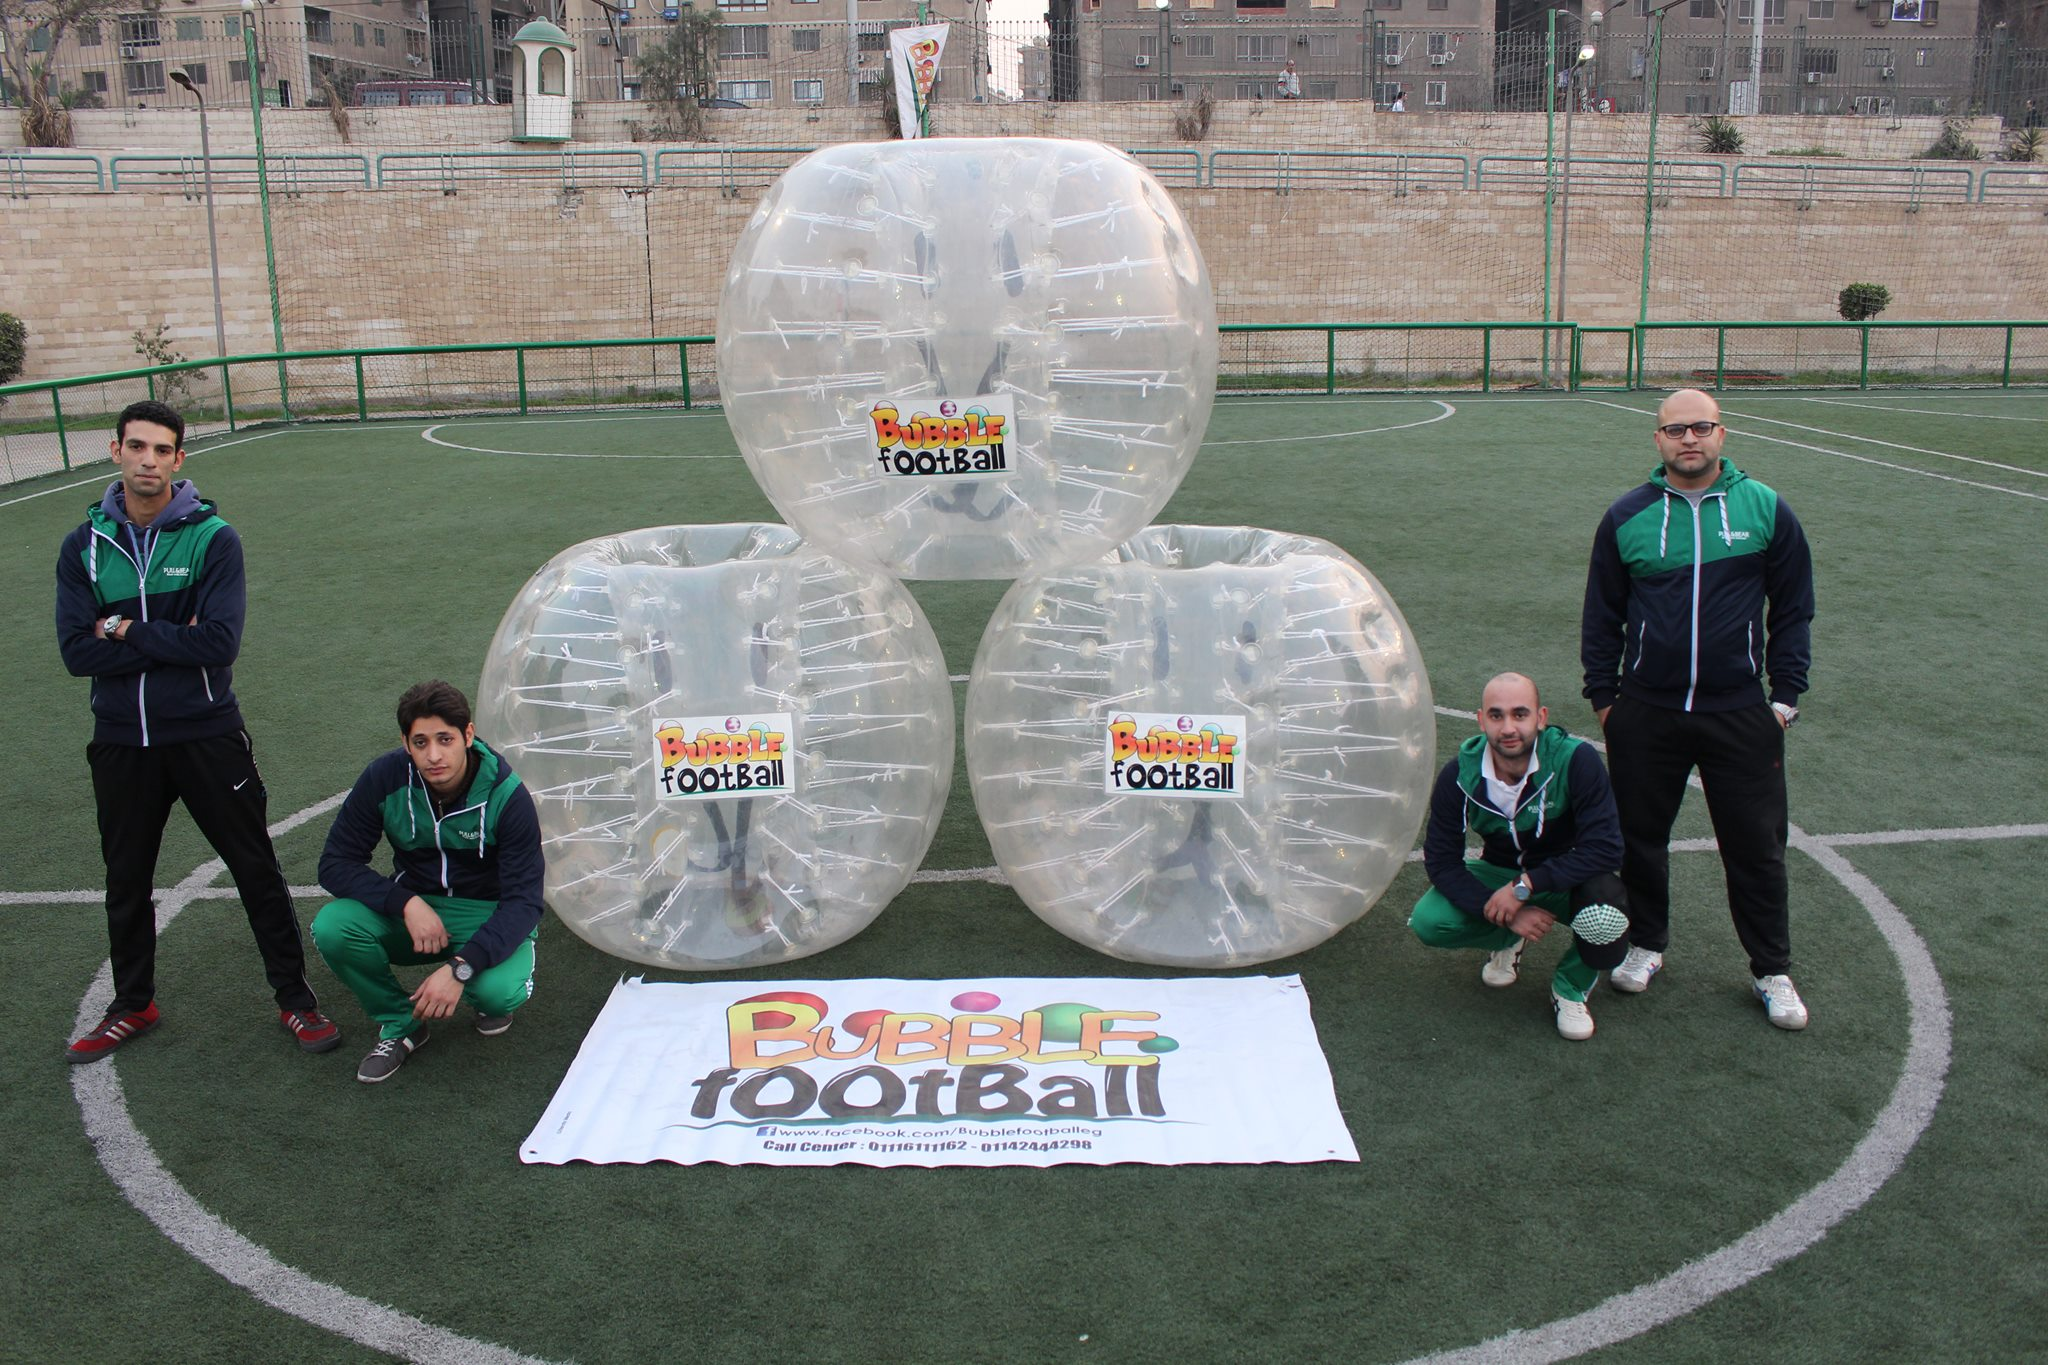 Bubble Football - Smart Village